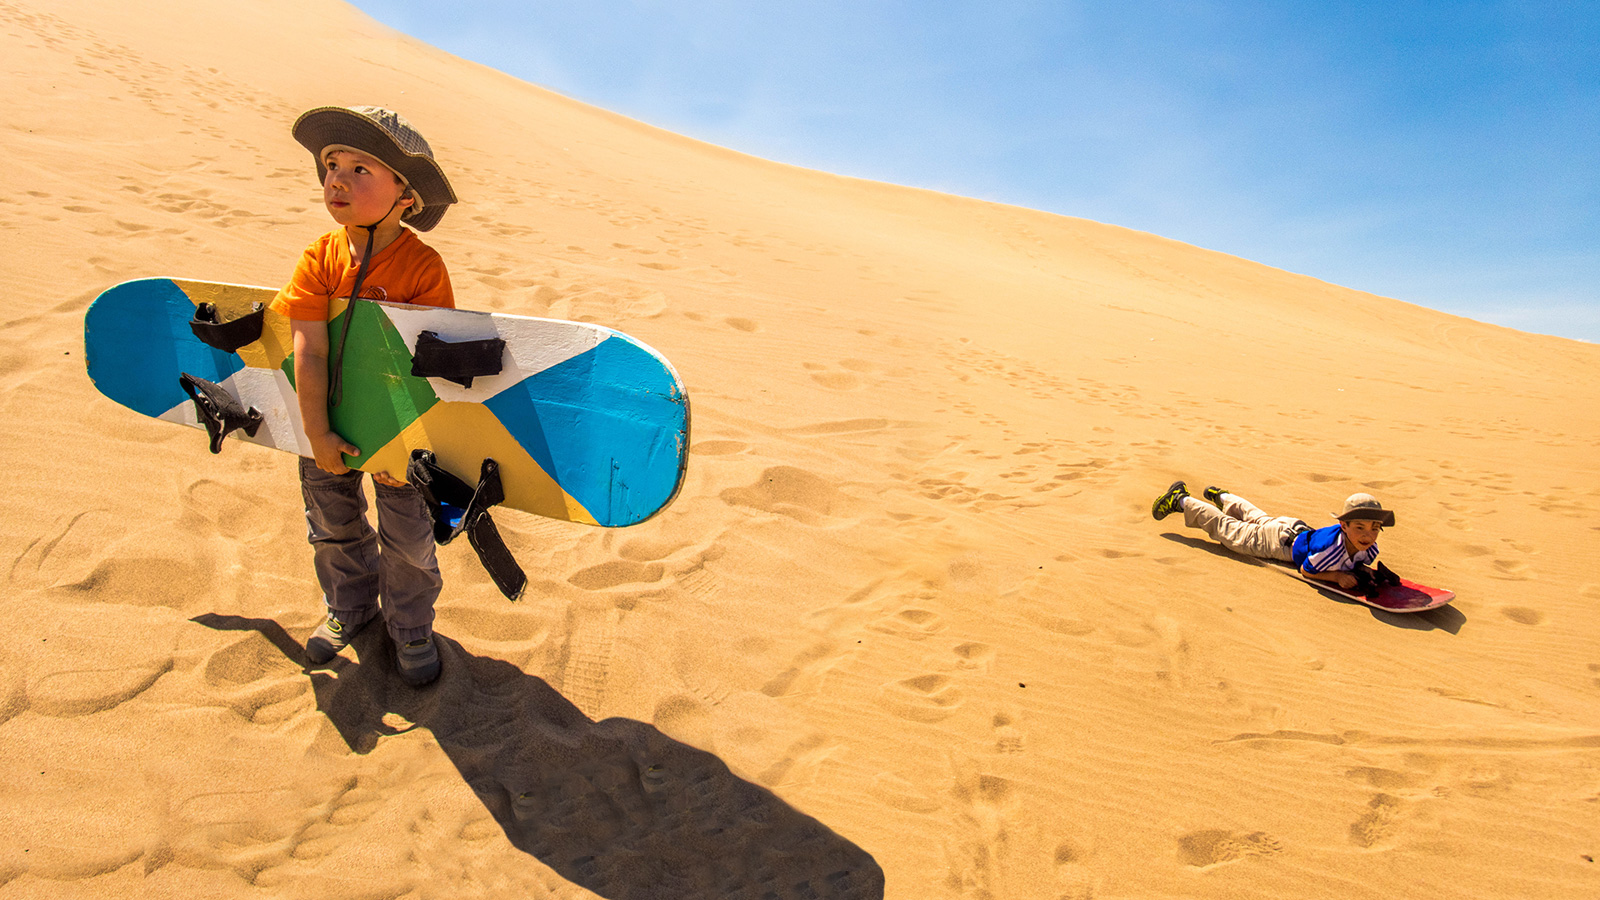 Huacachina is a town made famous by those in search of adrenaline. Check out why we think that riding dune buggies and sandboarding Peru with kids is epic!